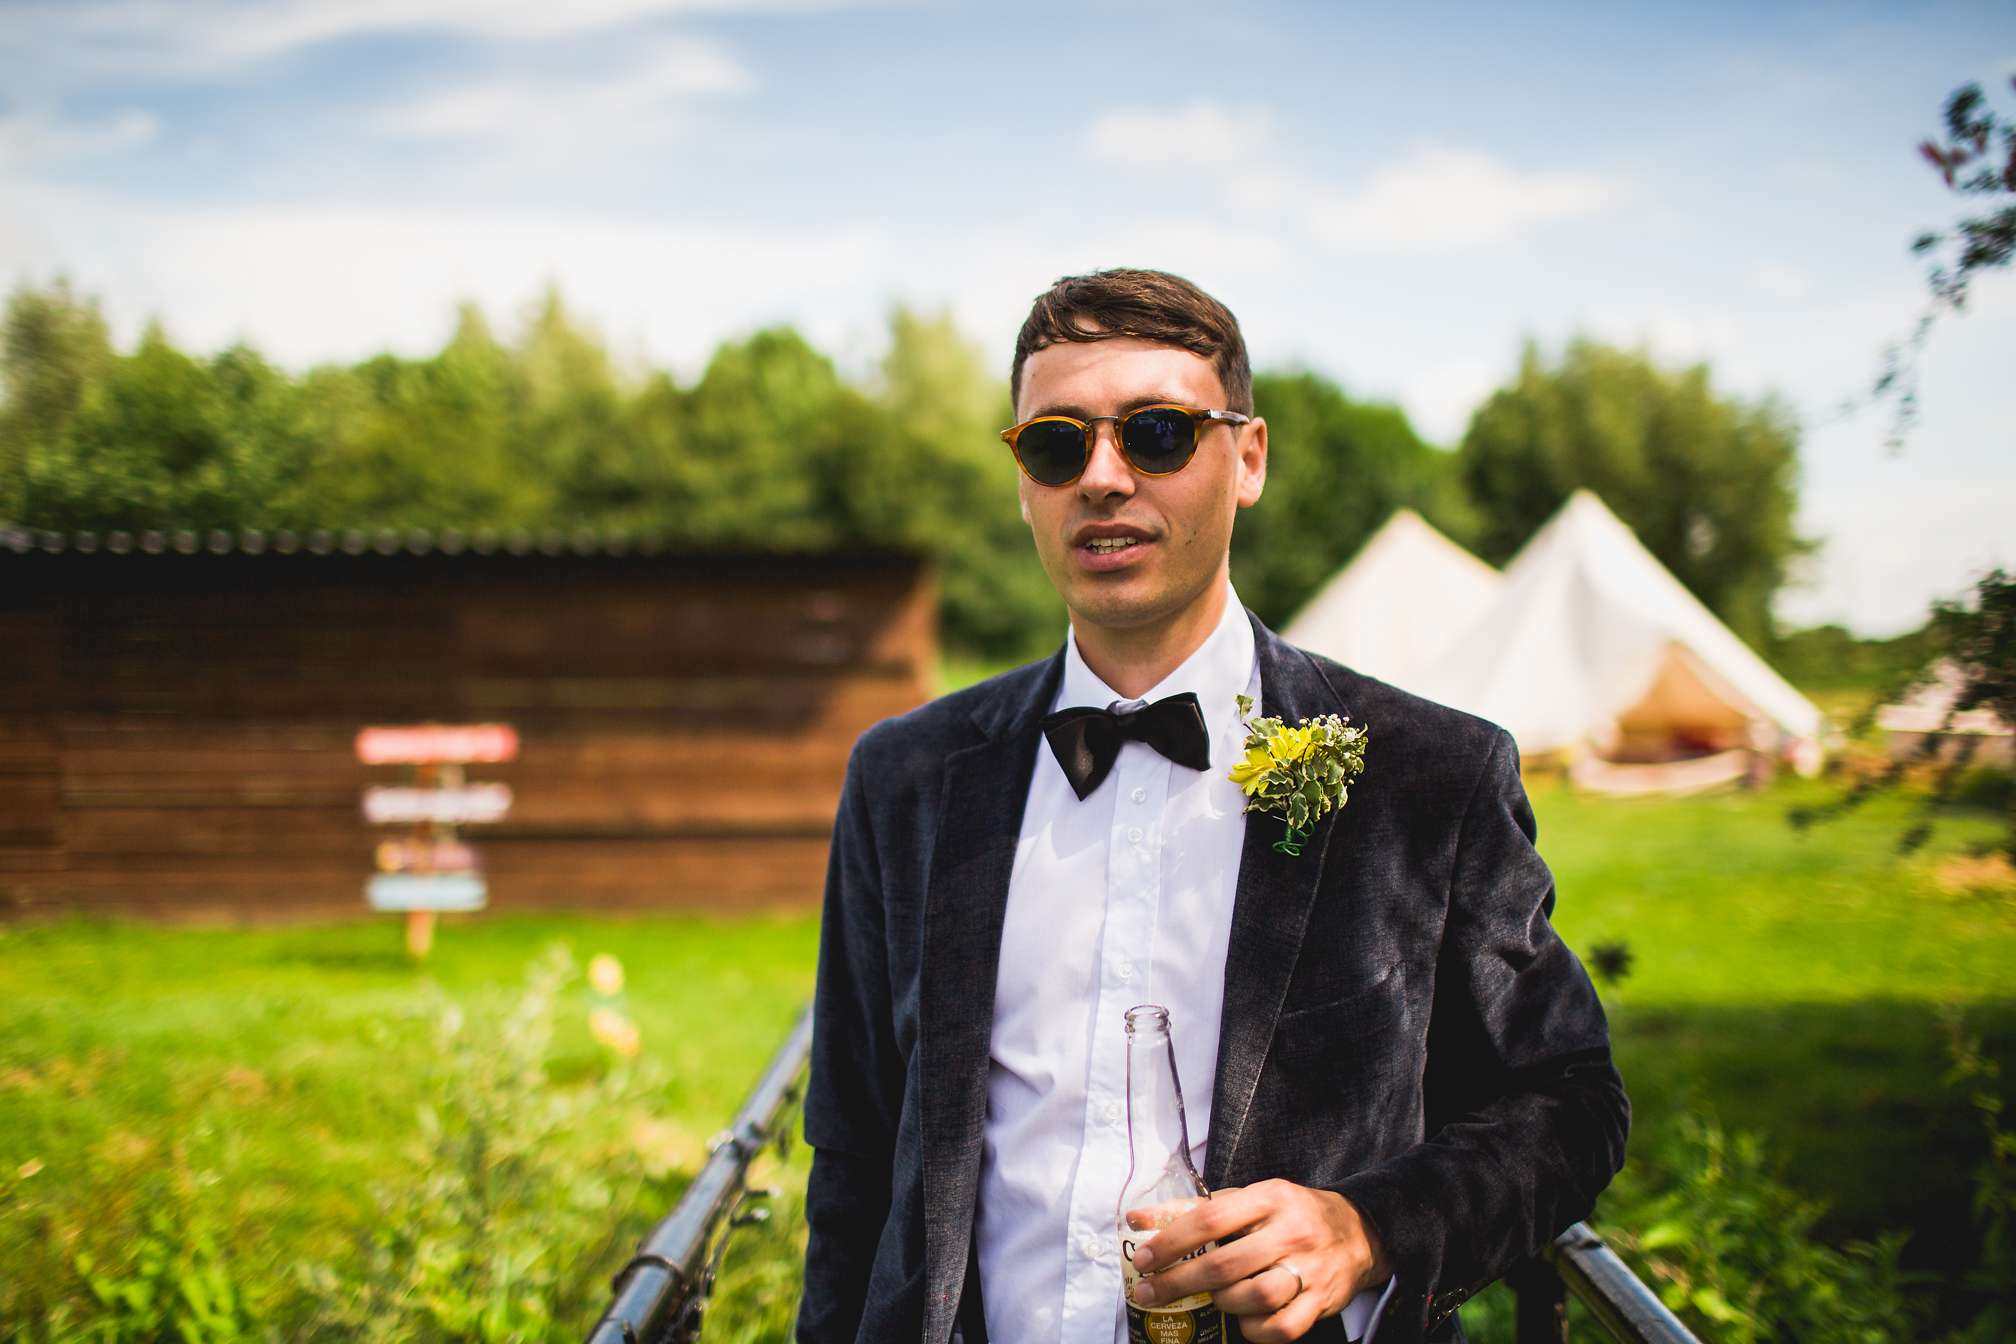 Cool groom in shades